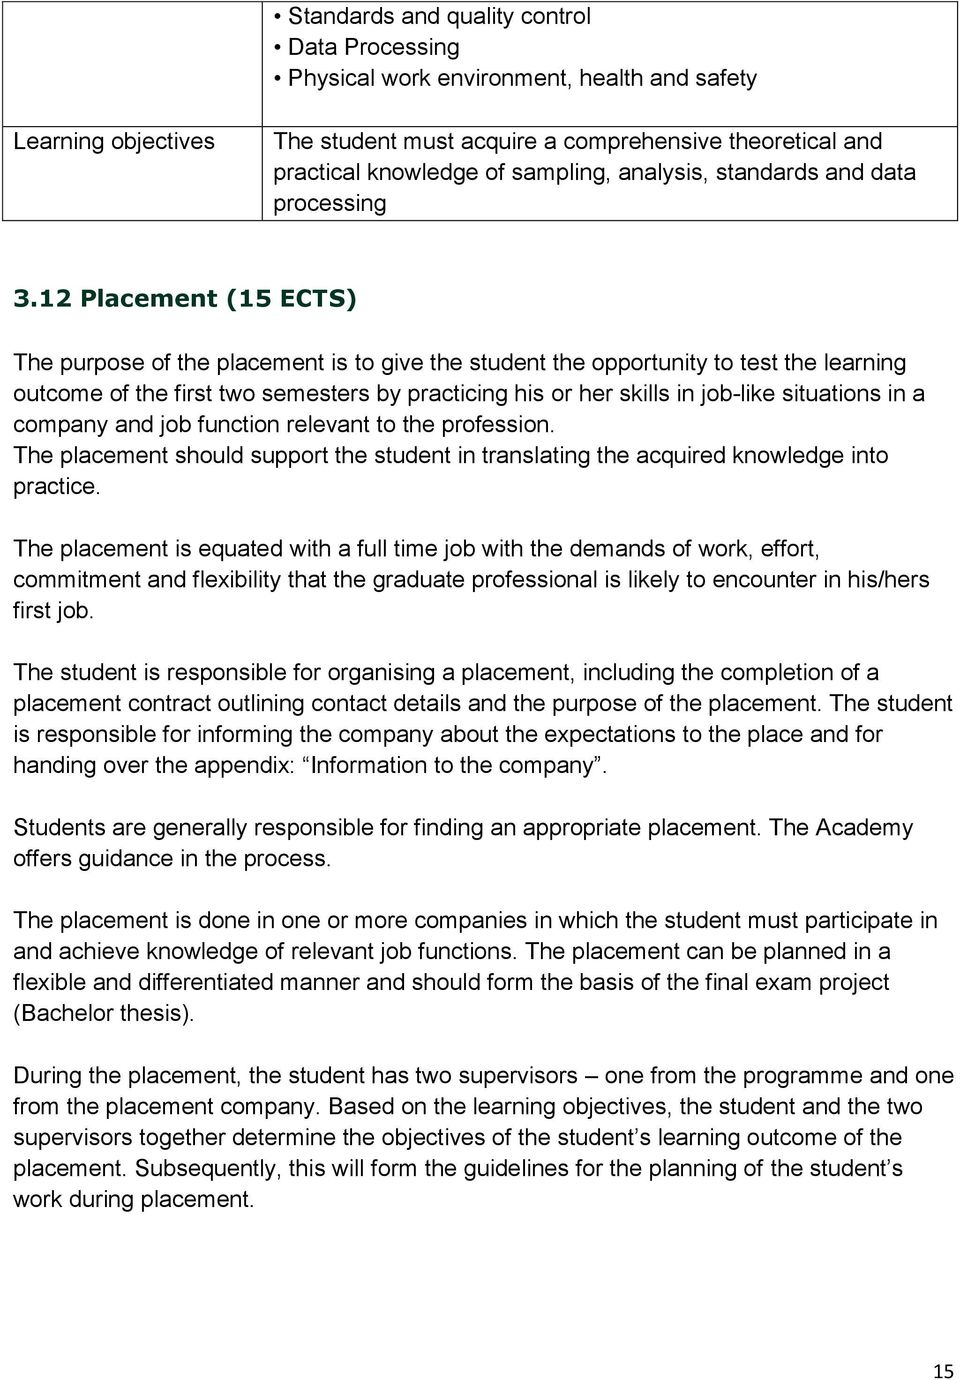 12 Placement (15 ECTS) The purpose of the placement is to give the student the opportunity to test the learning outcome of the first two semesters by practicing his or her skills in job-like